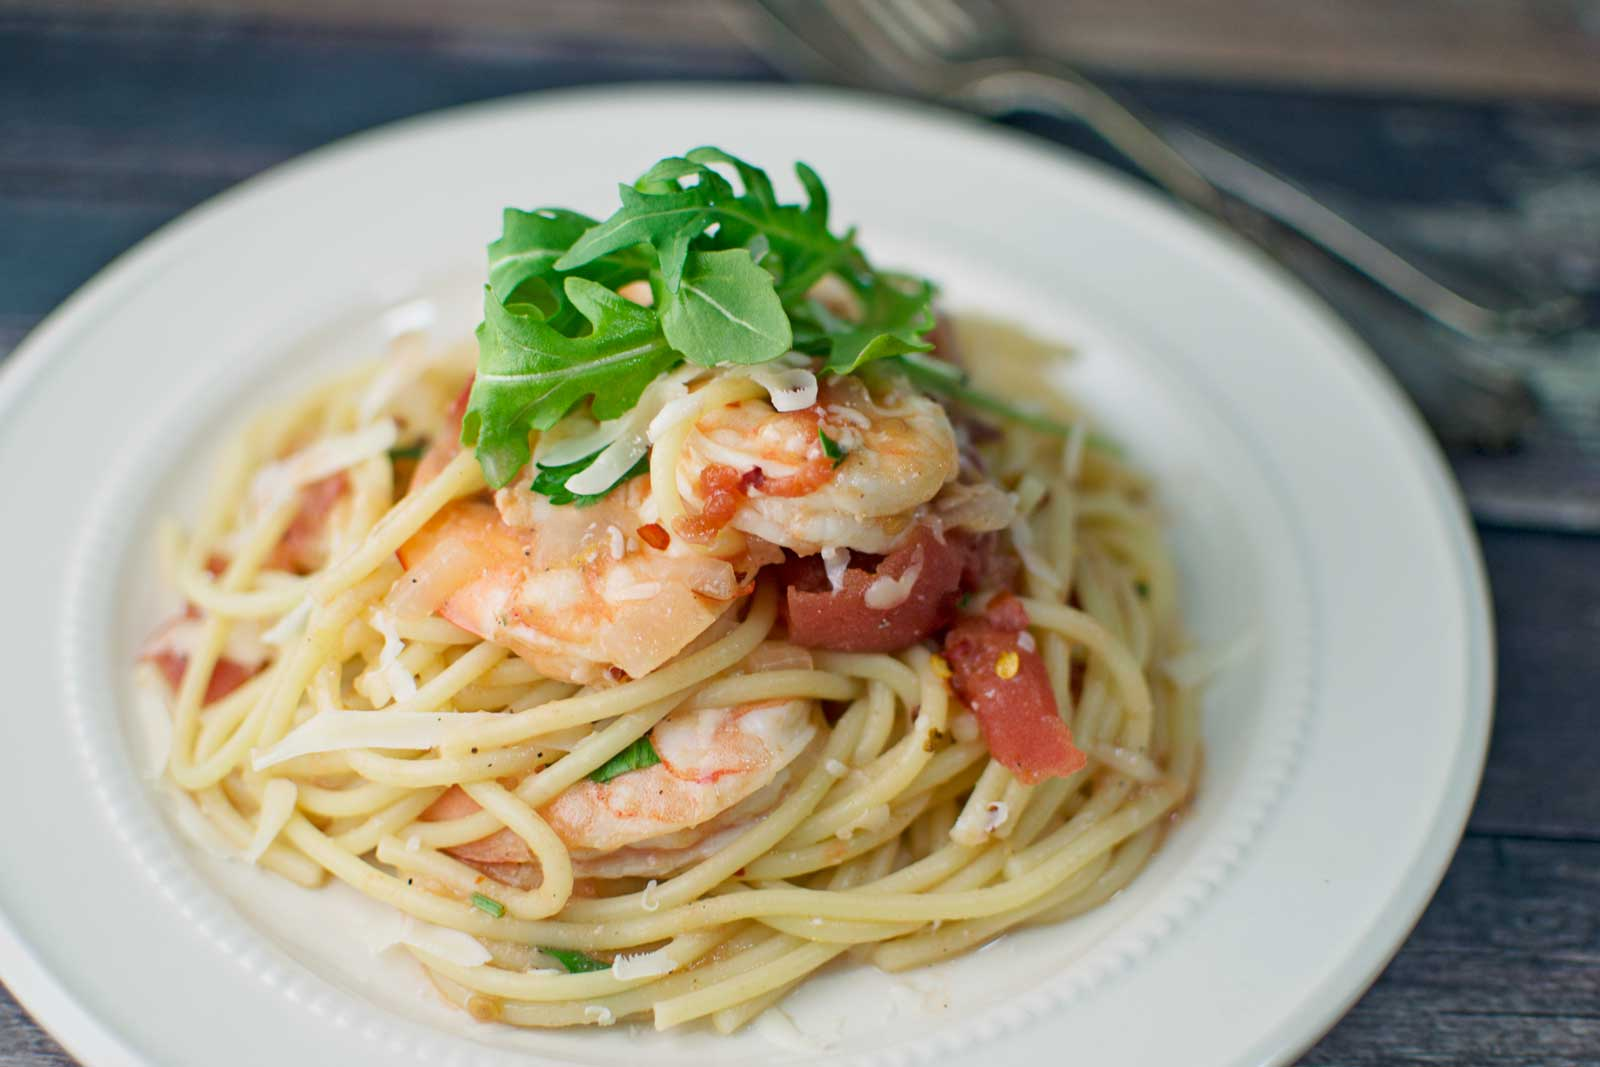 Spicy Shrimp with Pasta